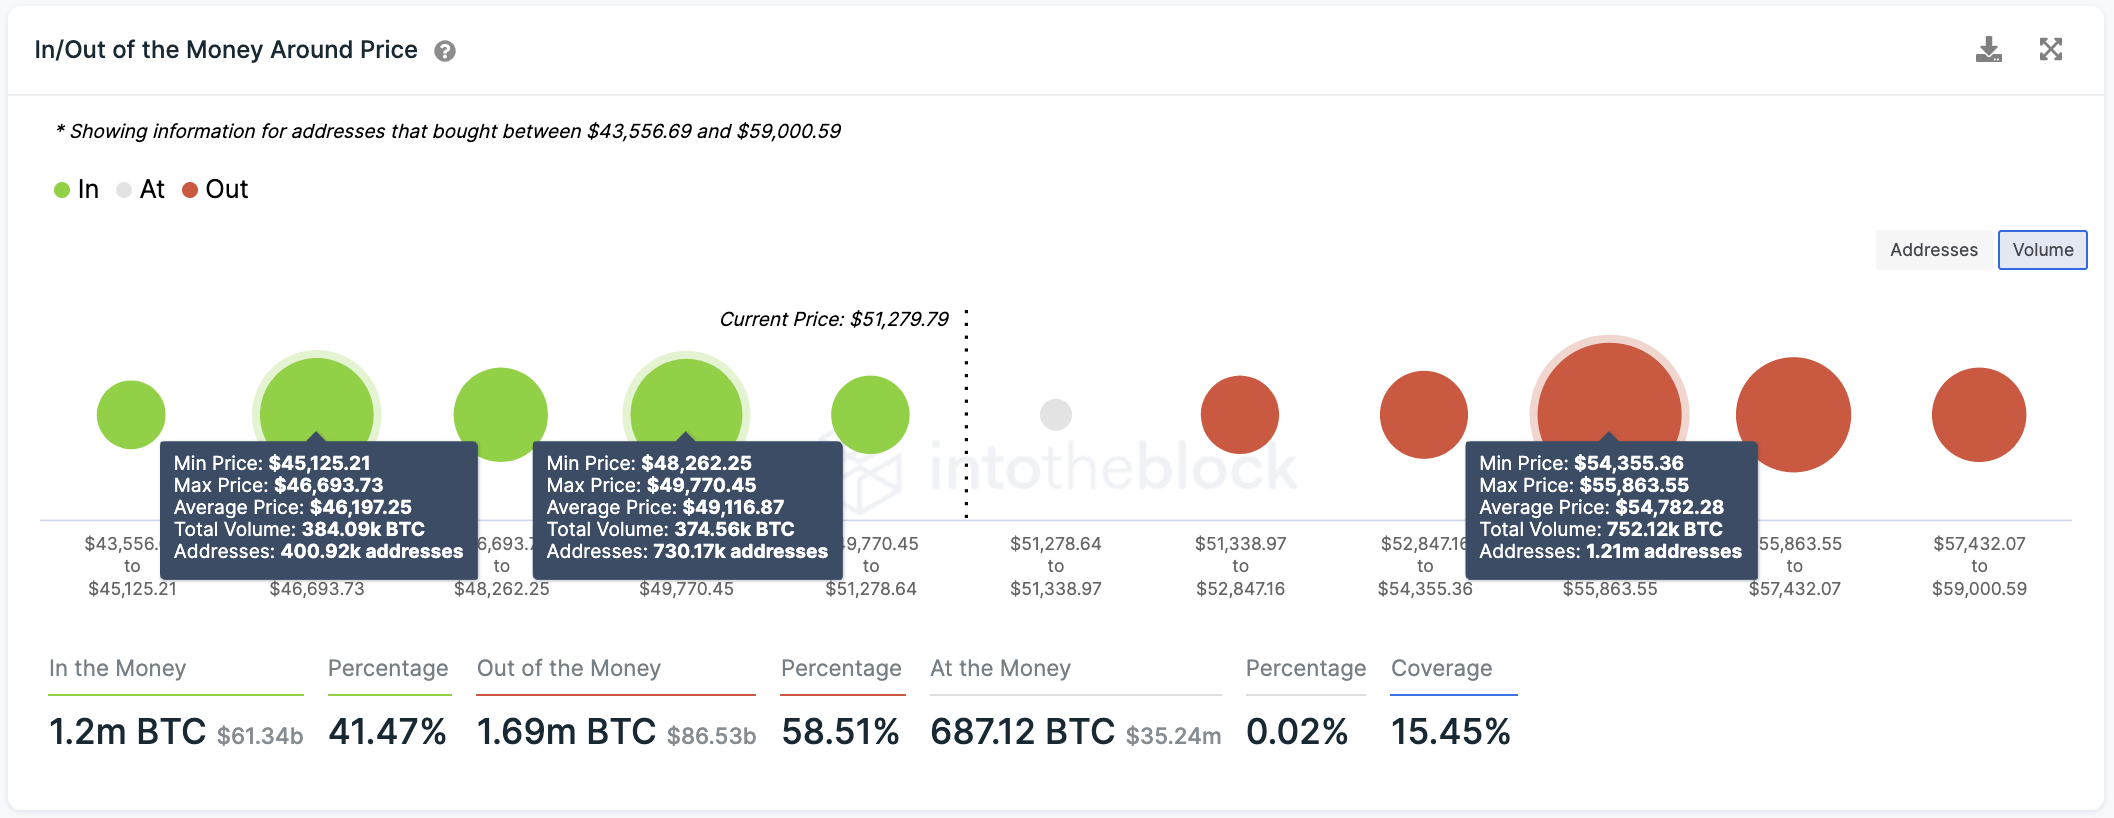 In/Out of the Money Around Price by IntoTheBlock